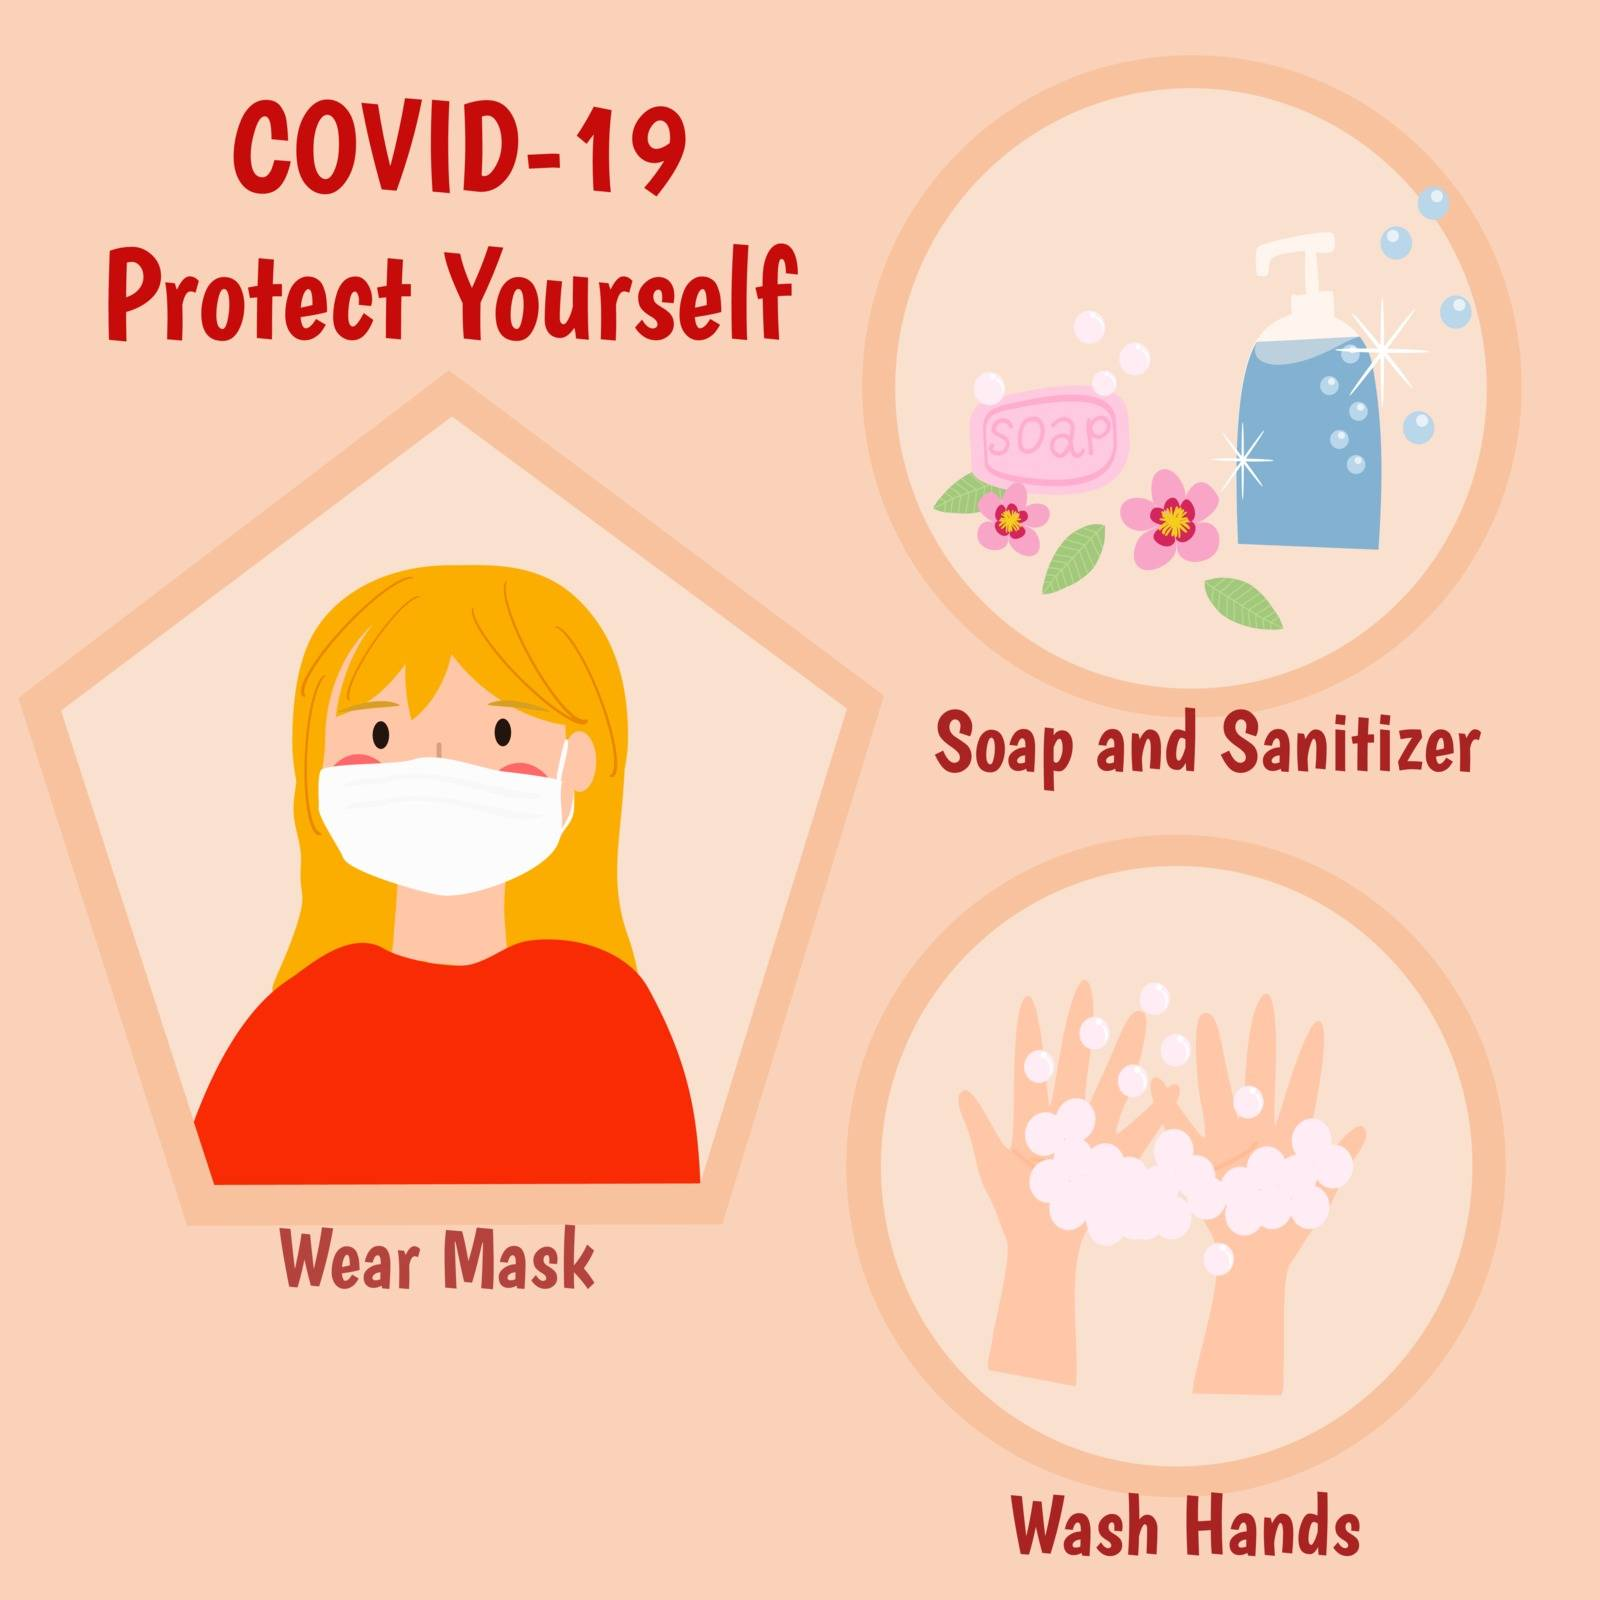 How to protect yourself from COVID-19.